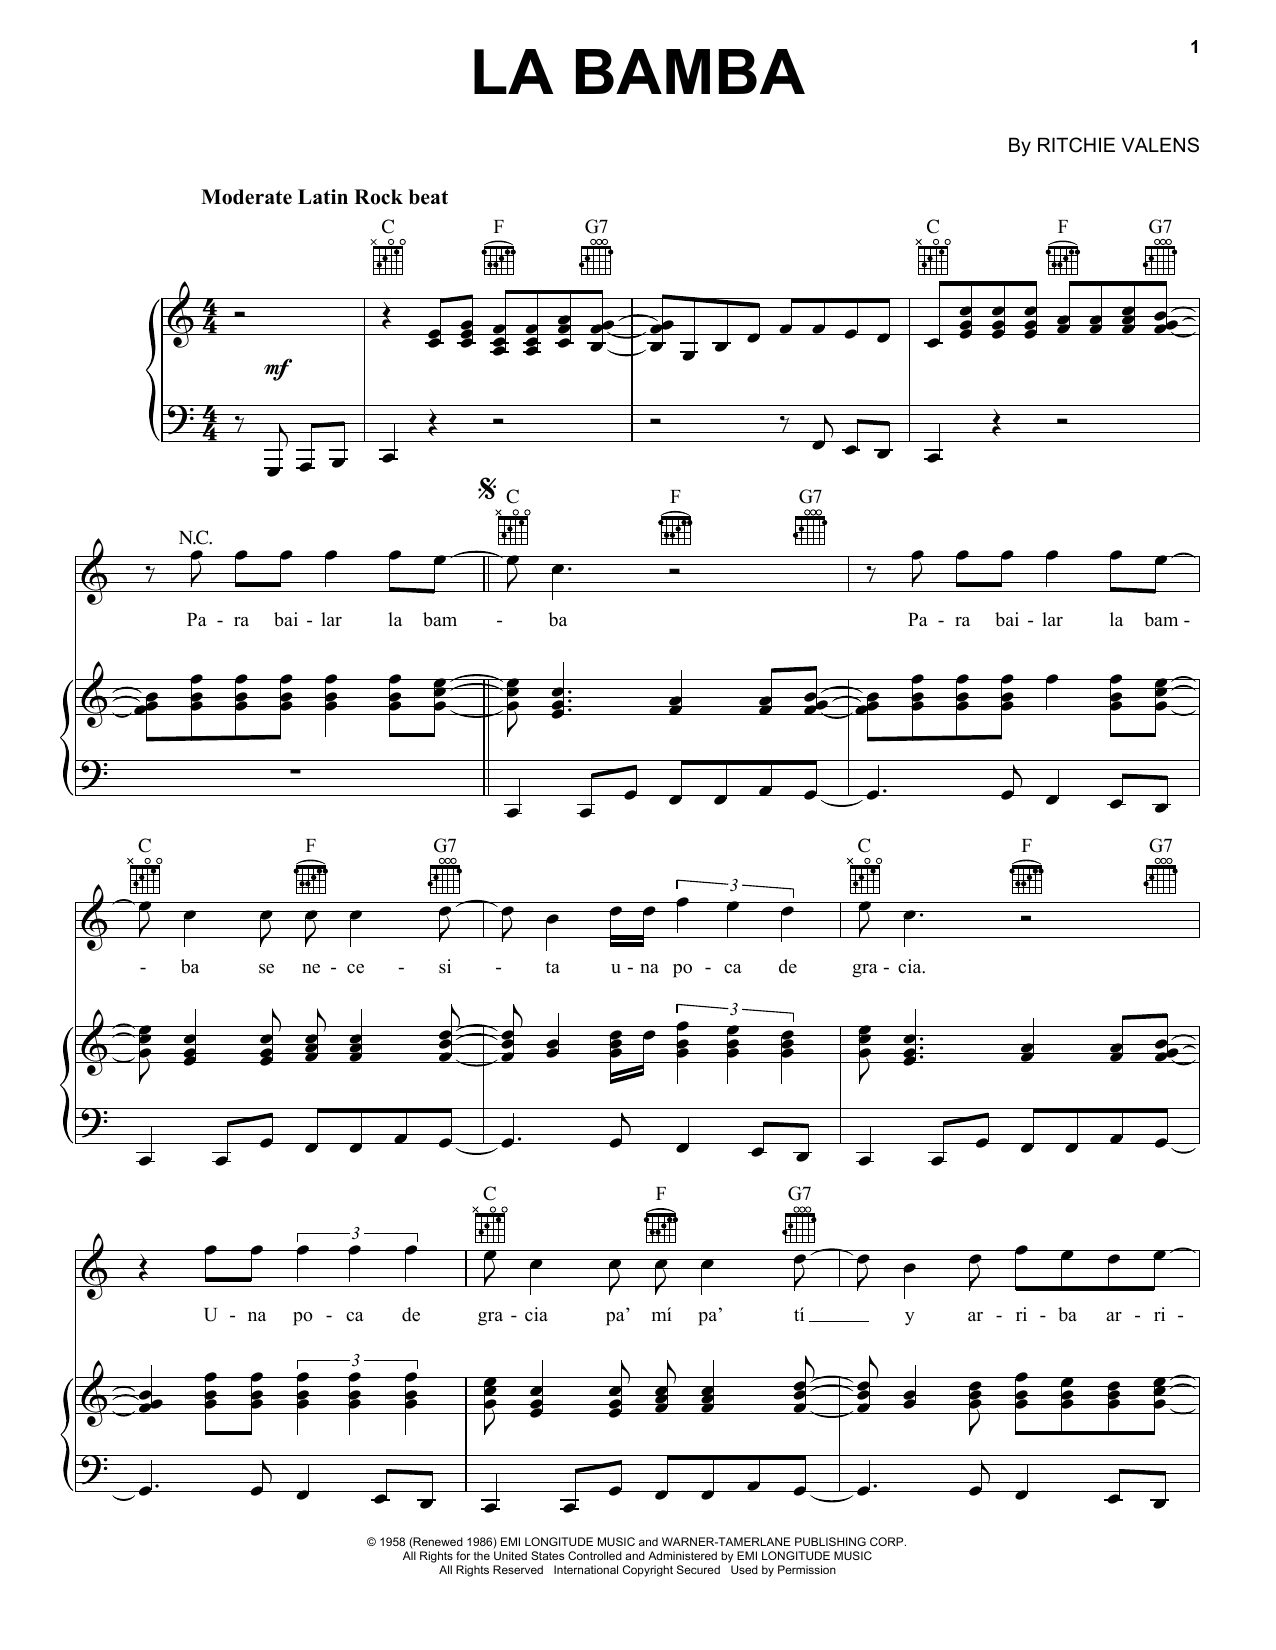 Ritchie Valens La Bamba sheet music notes and chords. Download Printable PDF.